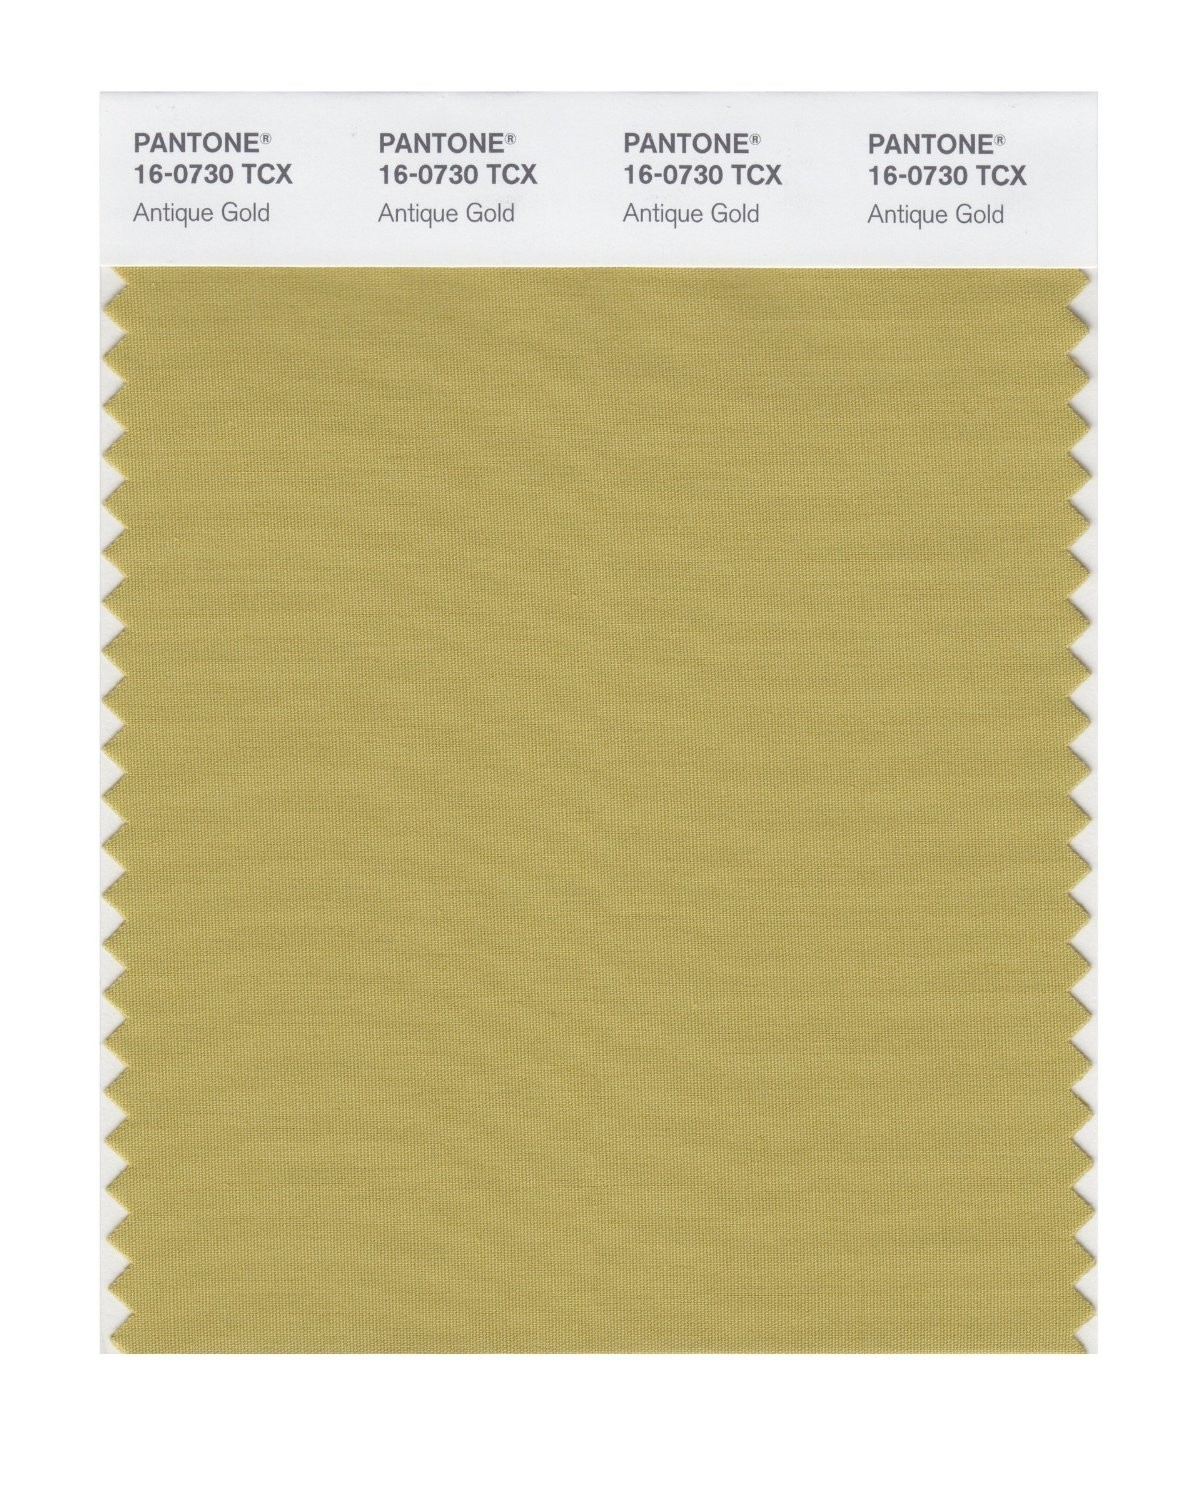 Pantone 16-0730 TCX Swatch Card Antique Gold